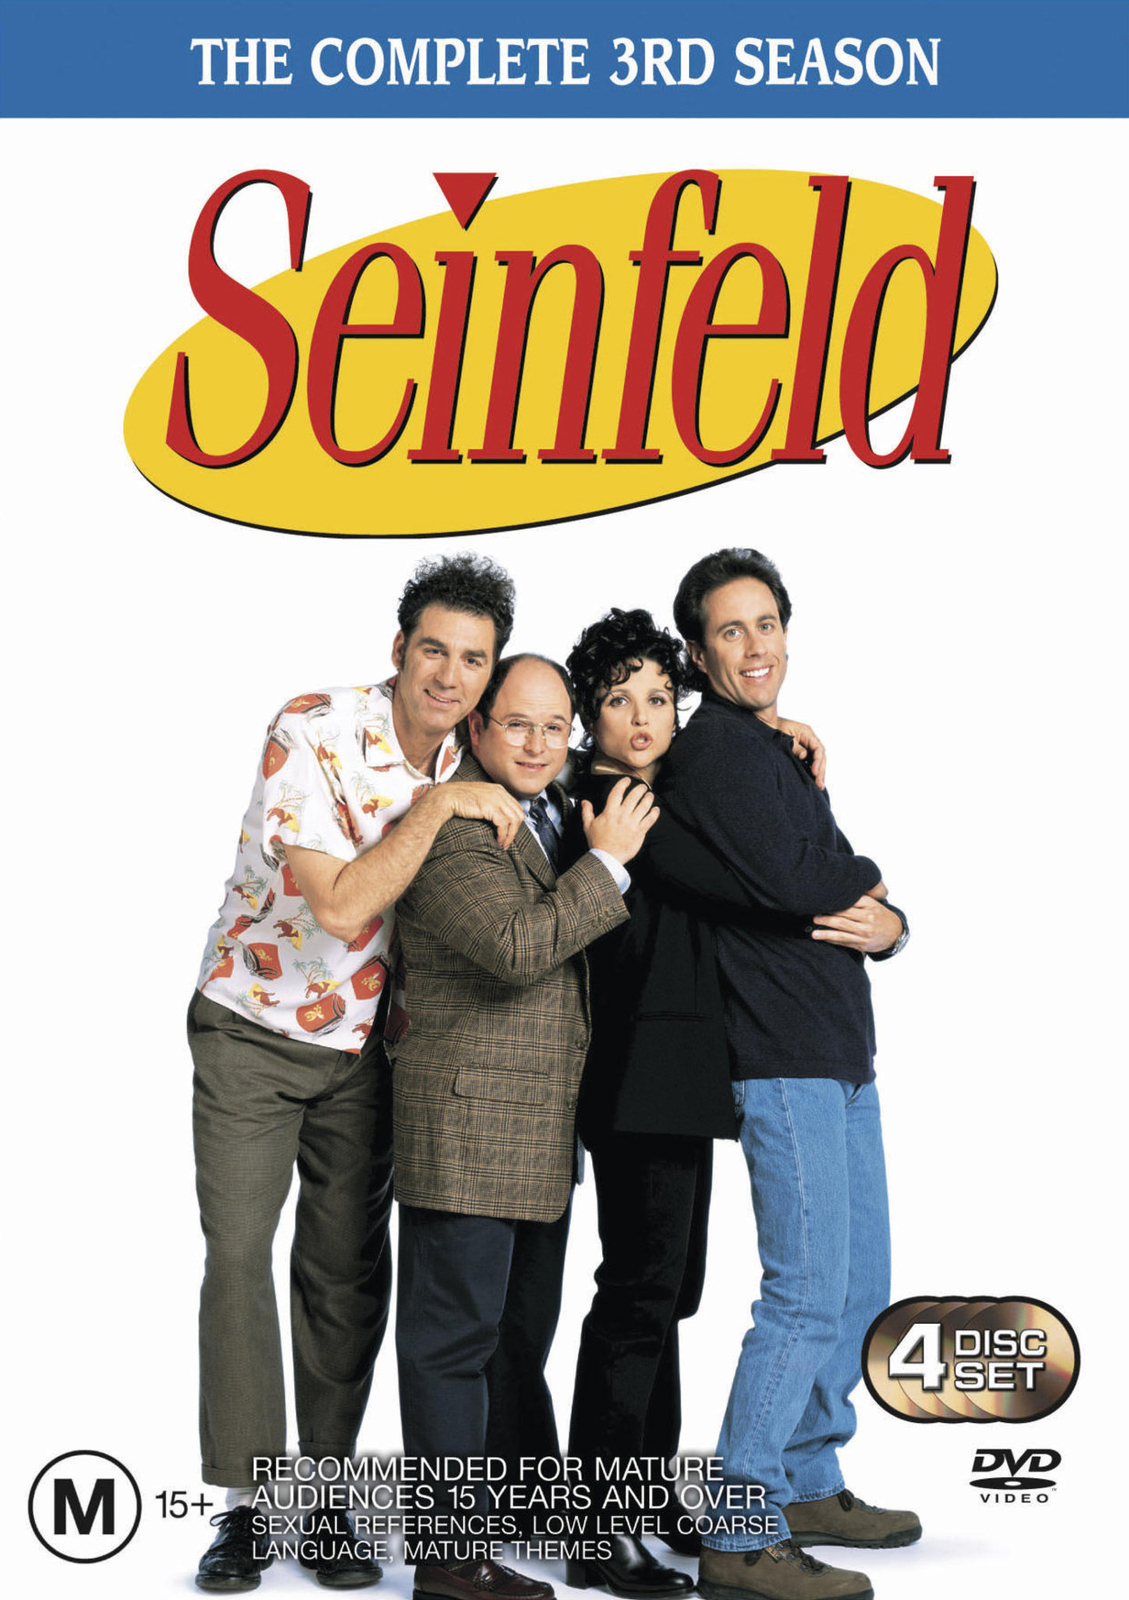 Seinfeld - The Complete 3rd Season on DVD image